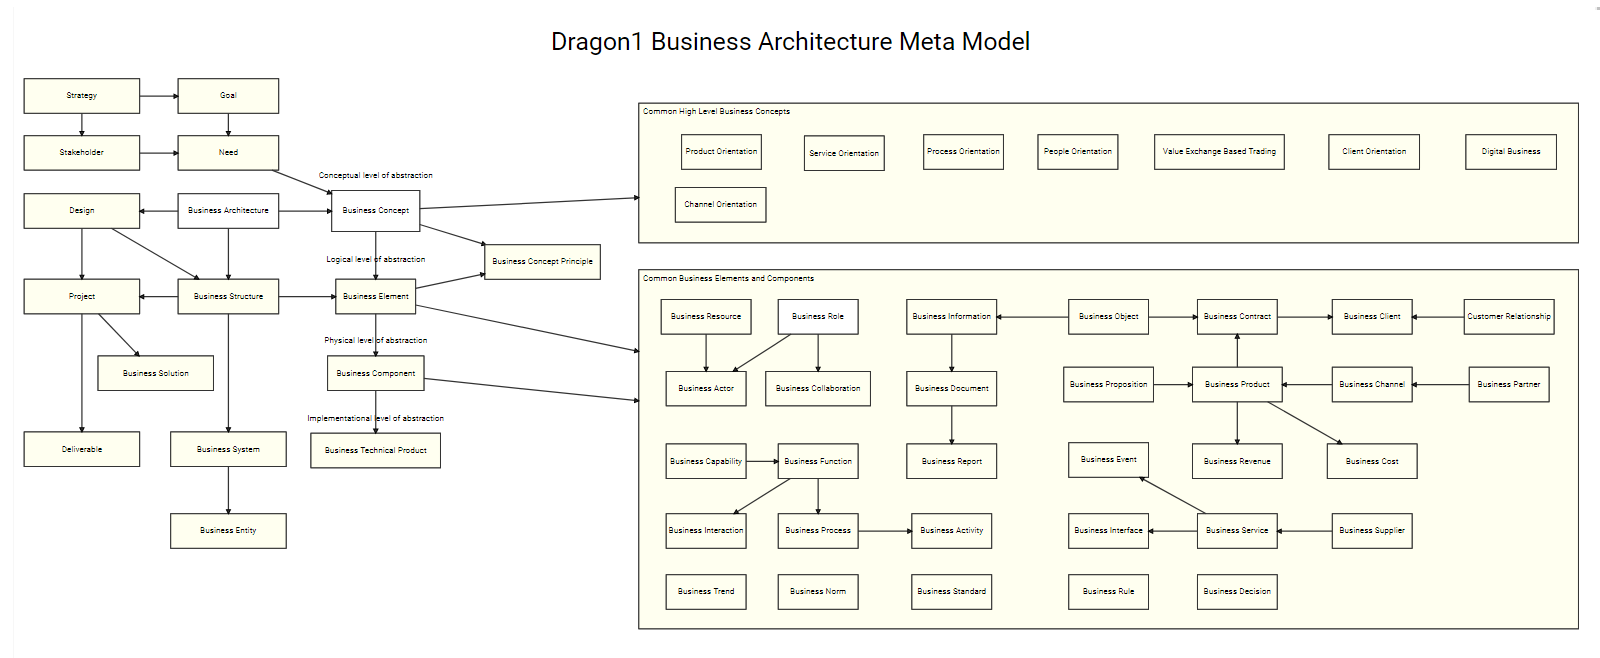 Dragon1 Business Architecture Meta Model Detailed